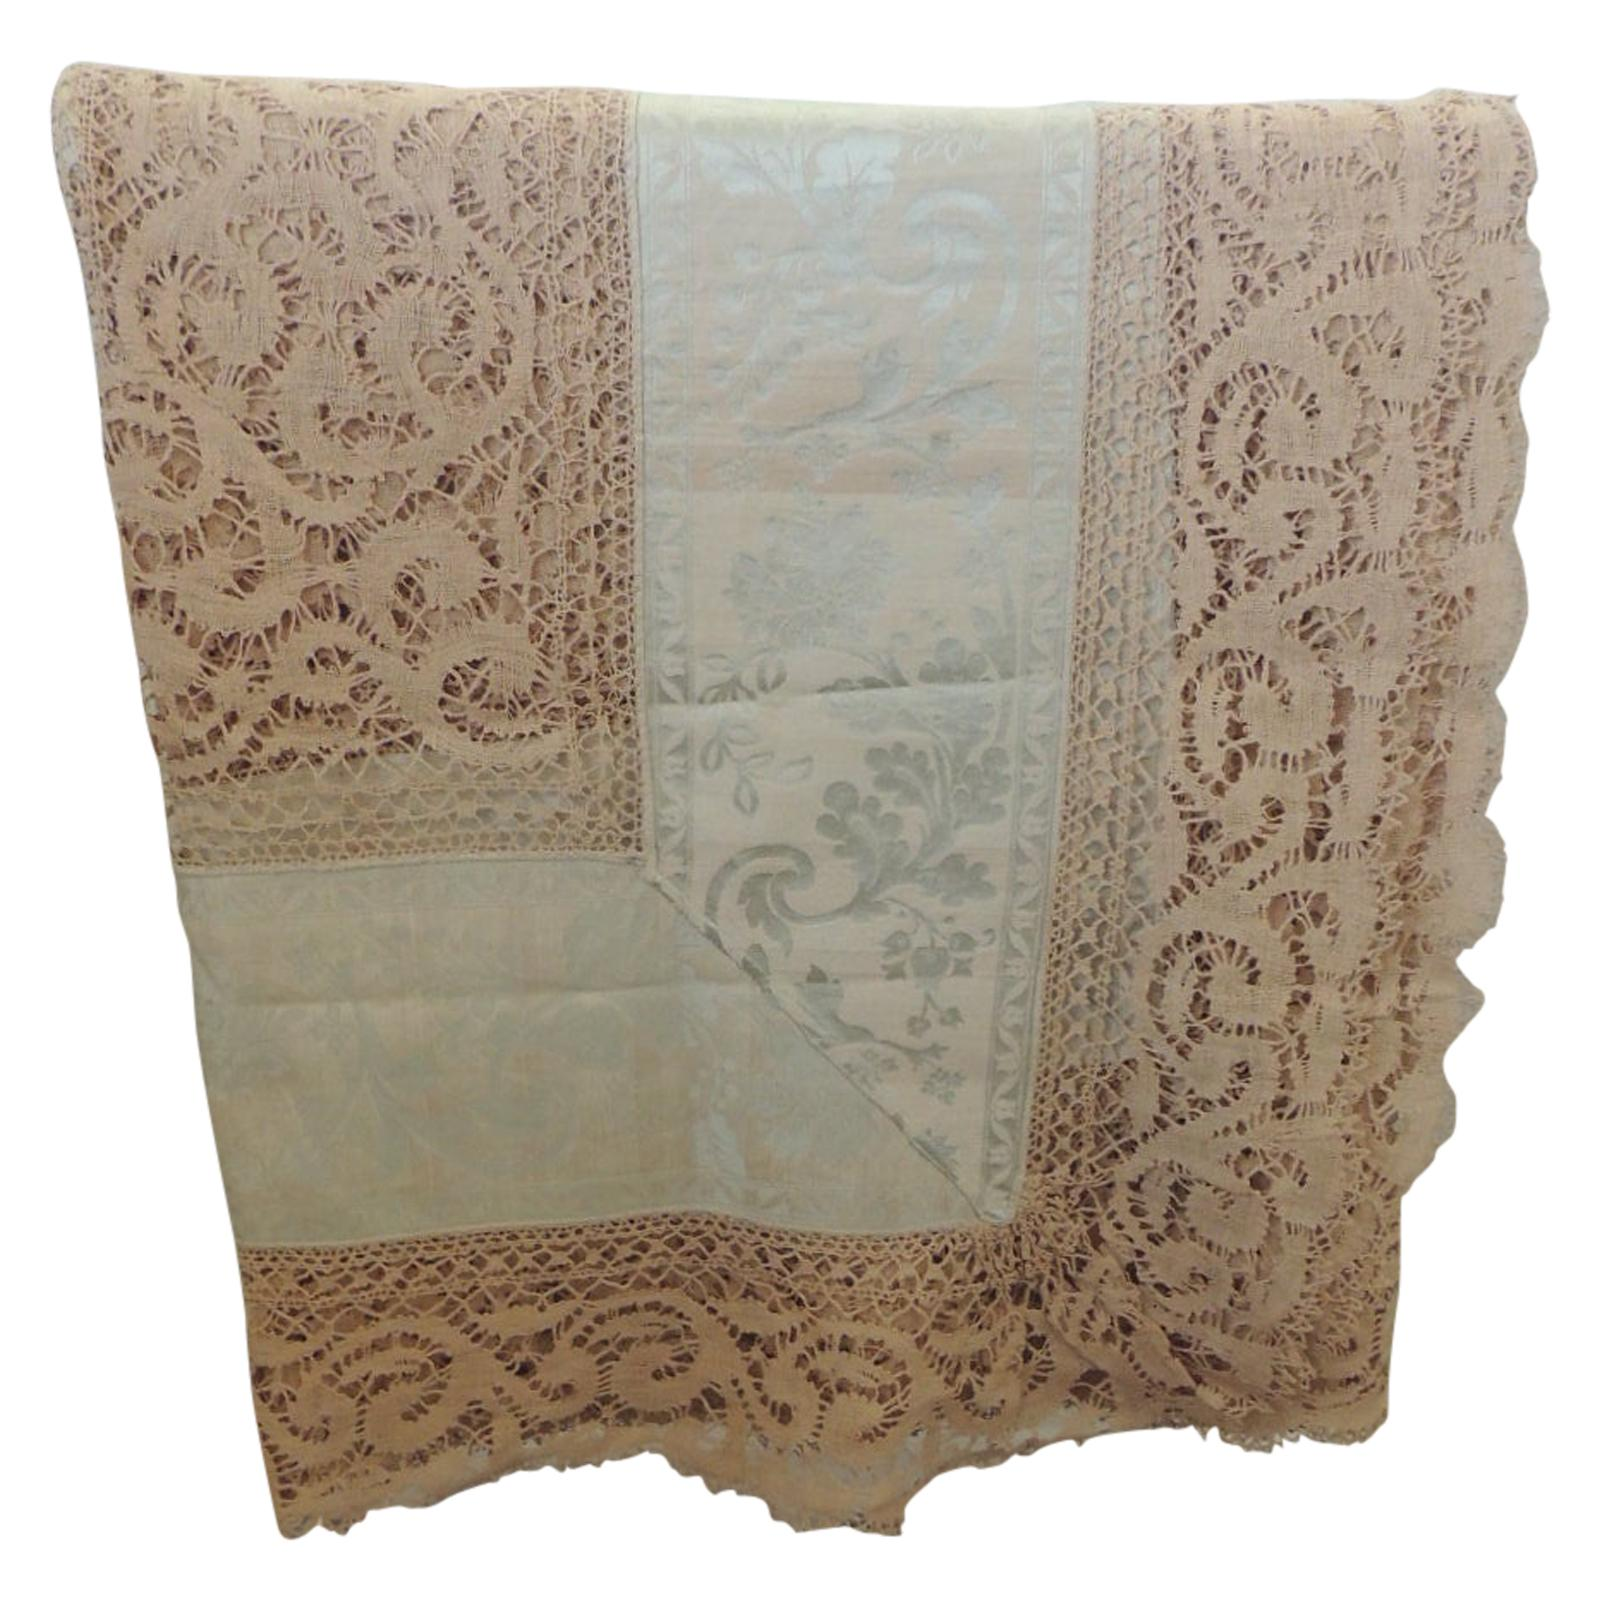 Bobbin Lace and Damask Bed Topper with Large Lace Center Panel